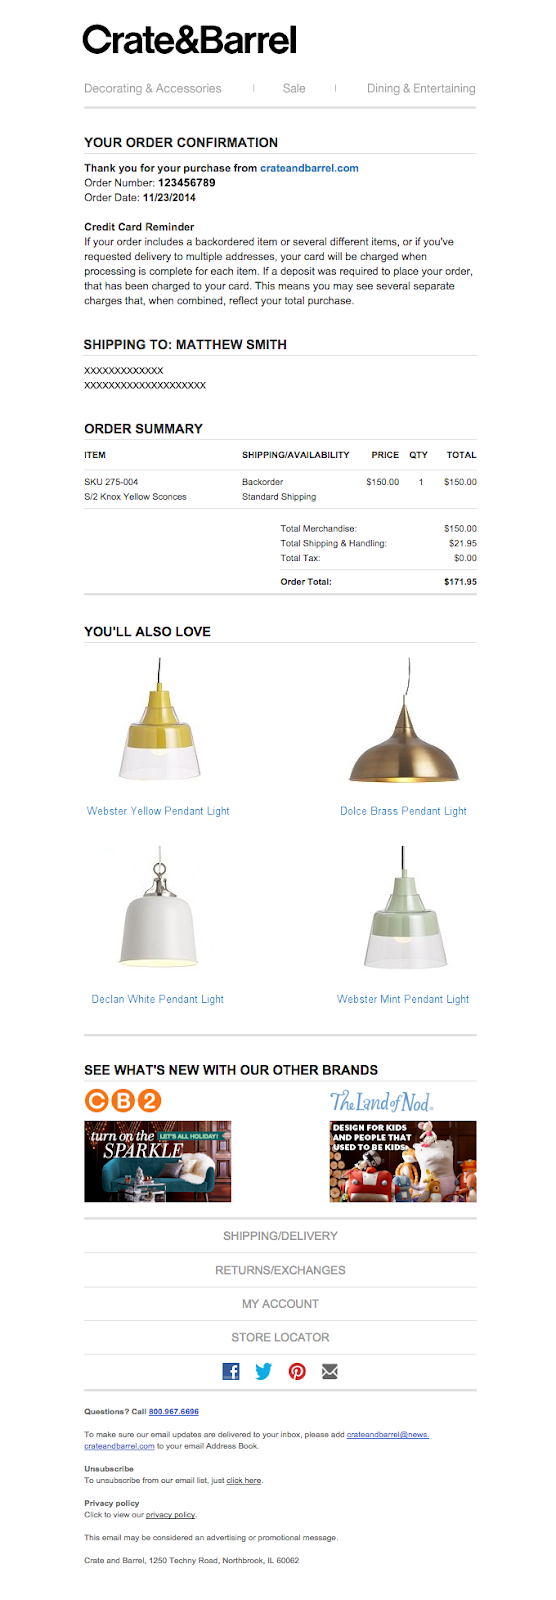 Crate and Barrel order confirmation email with personalized suggestions.